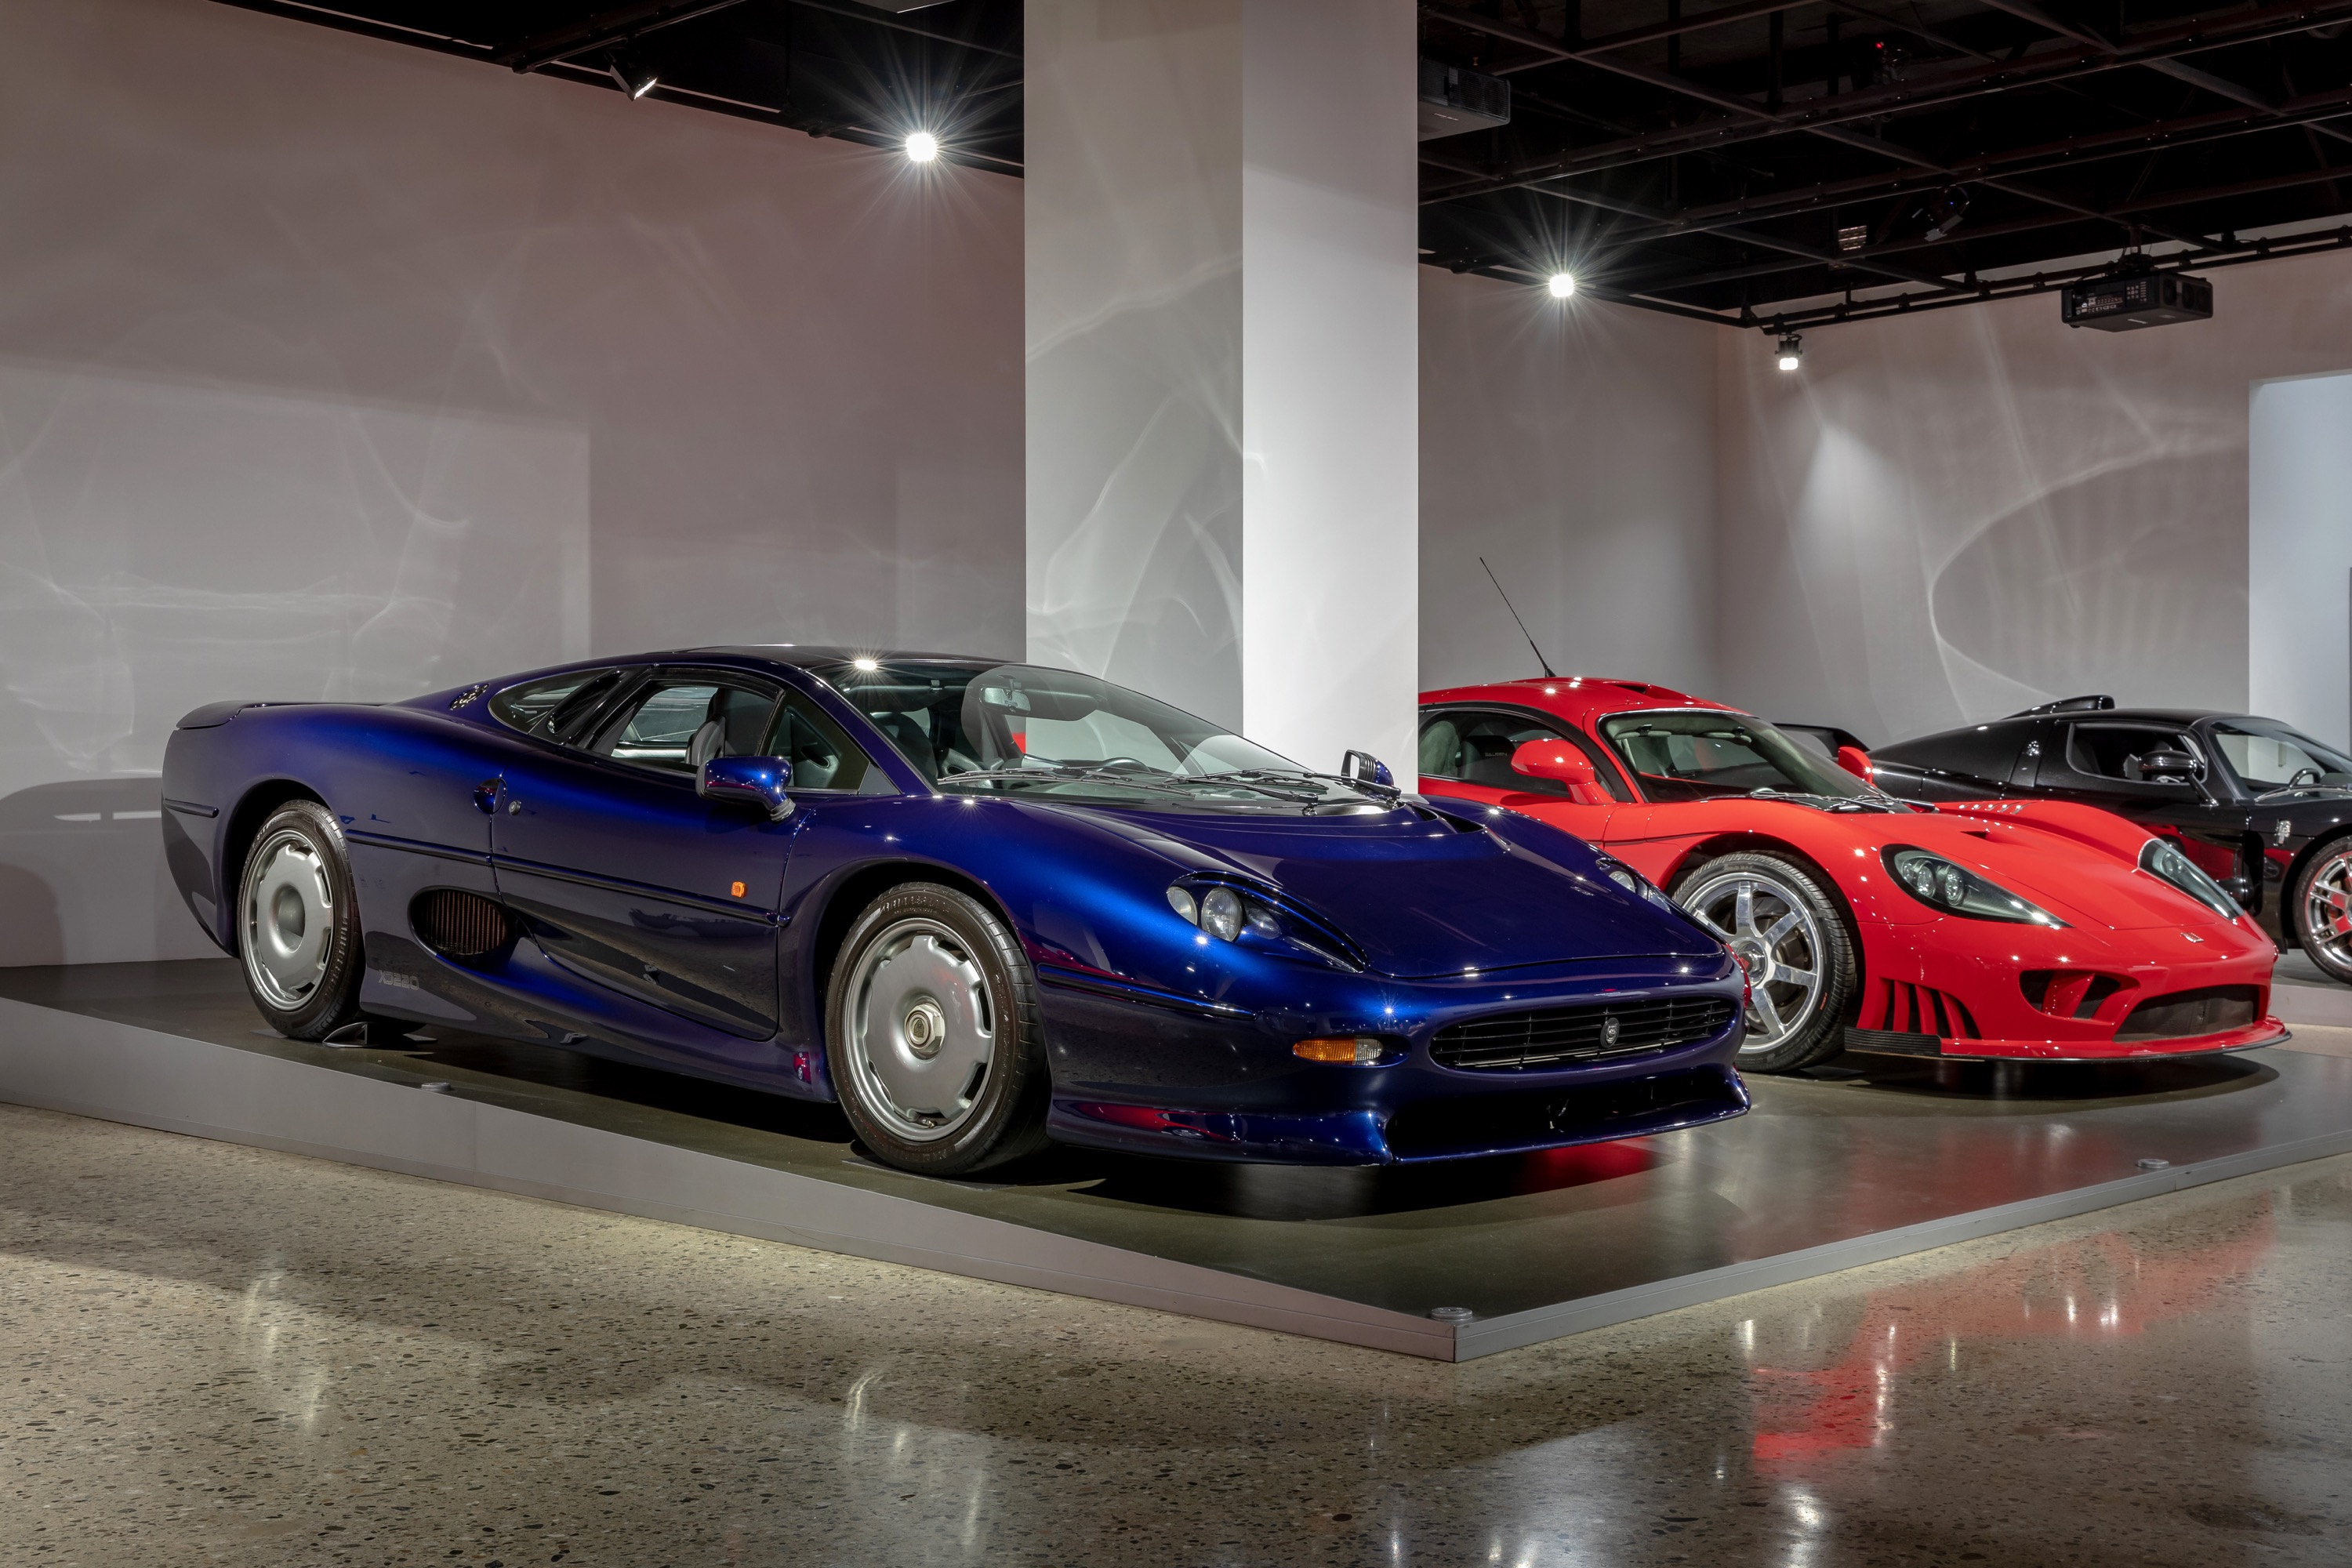 The Jaguar XJ220 was briefly the world's fastest car, until the McLaren F1 showed up a year later and went much quicker.